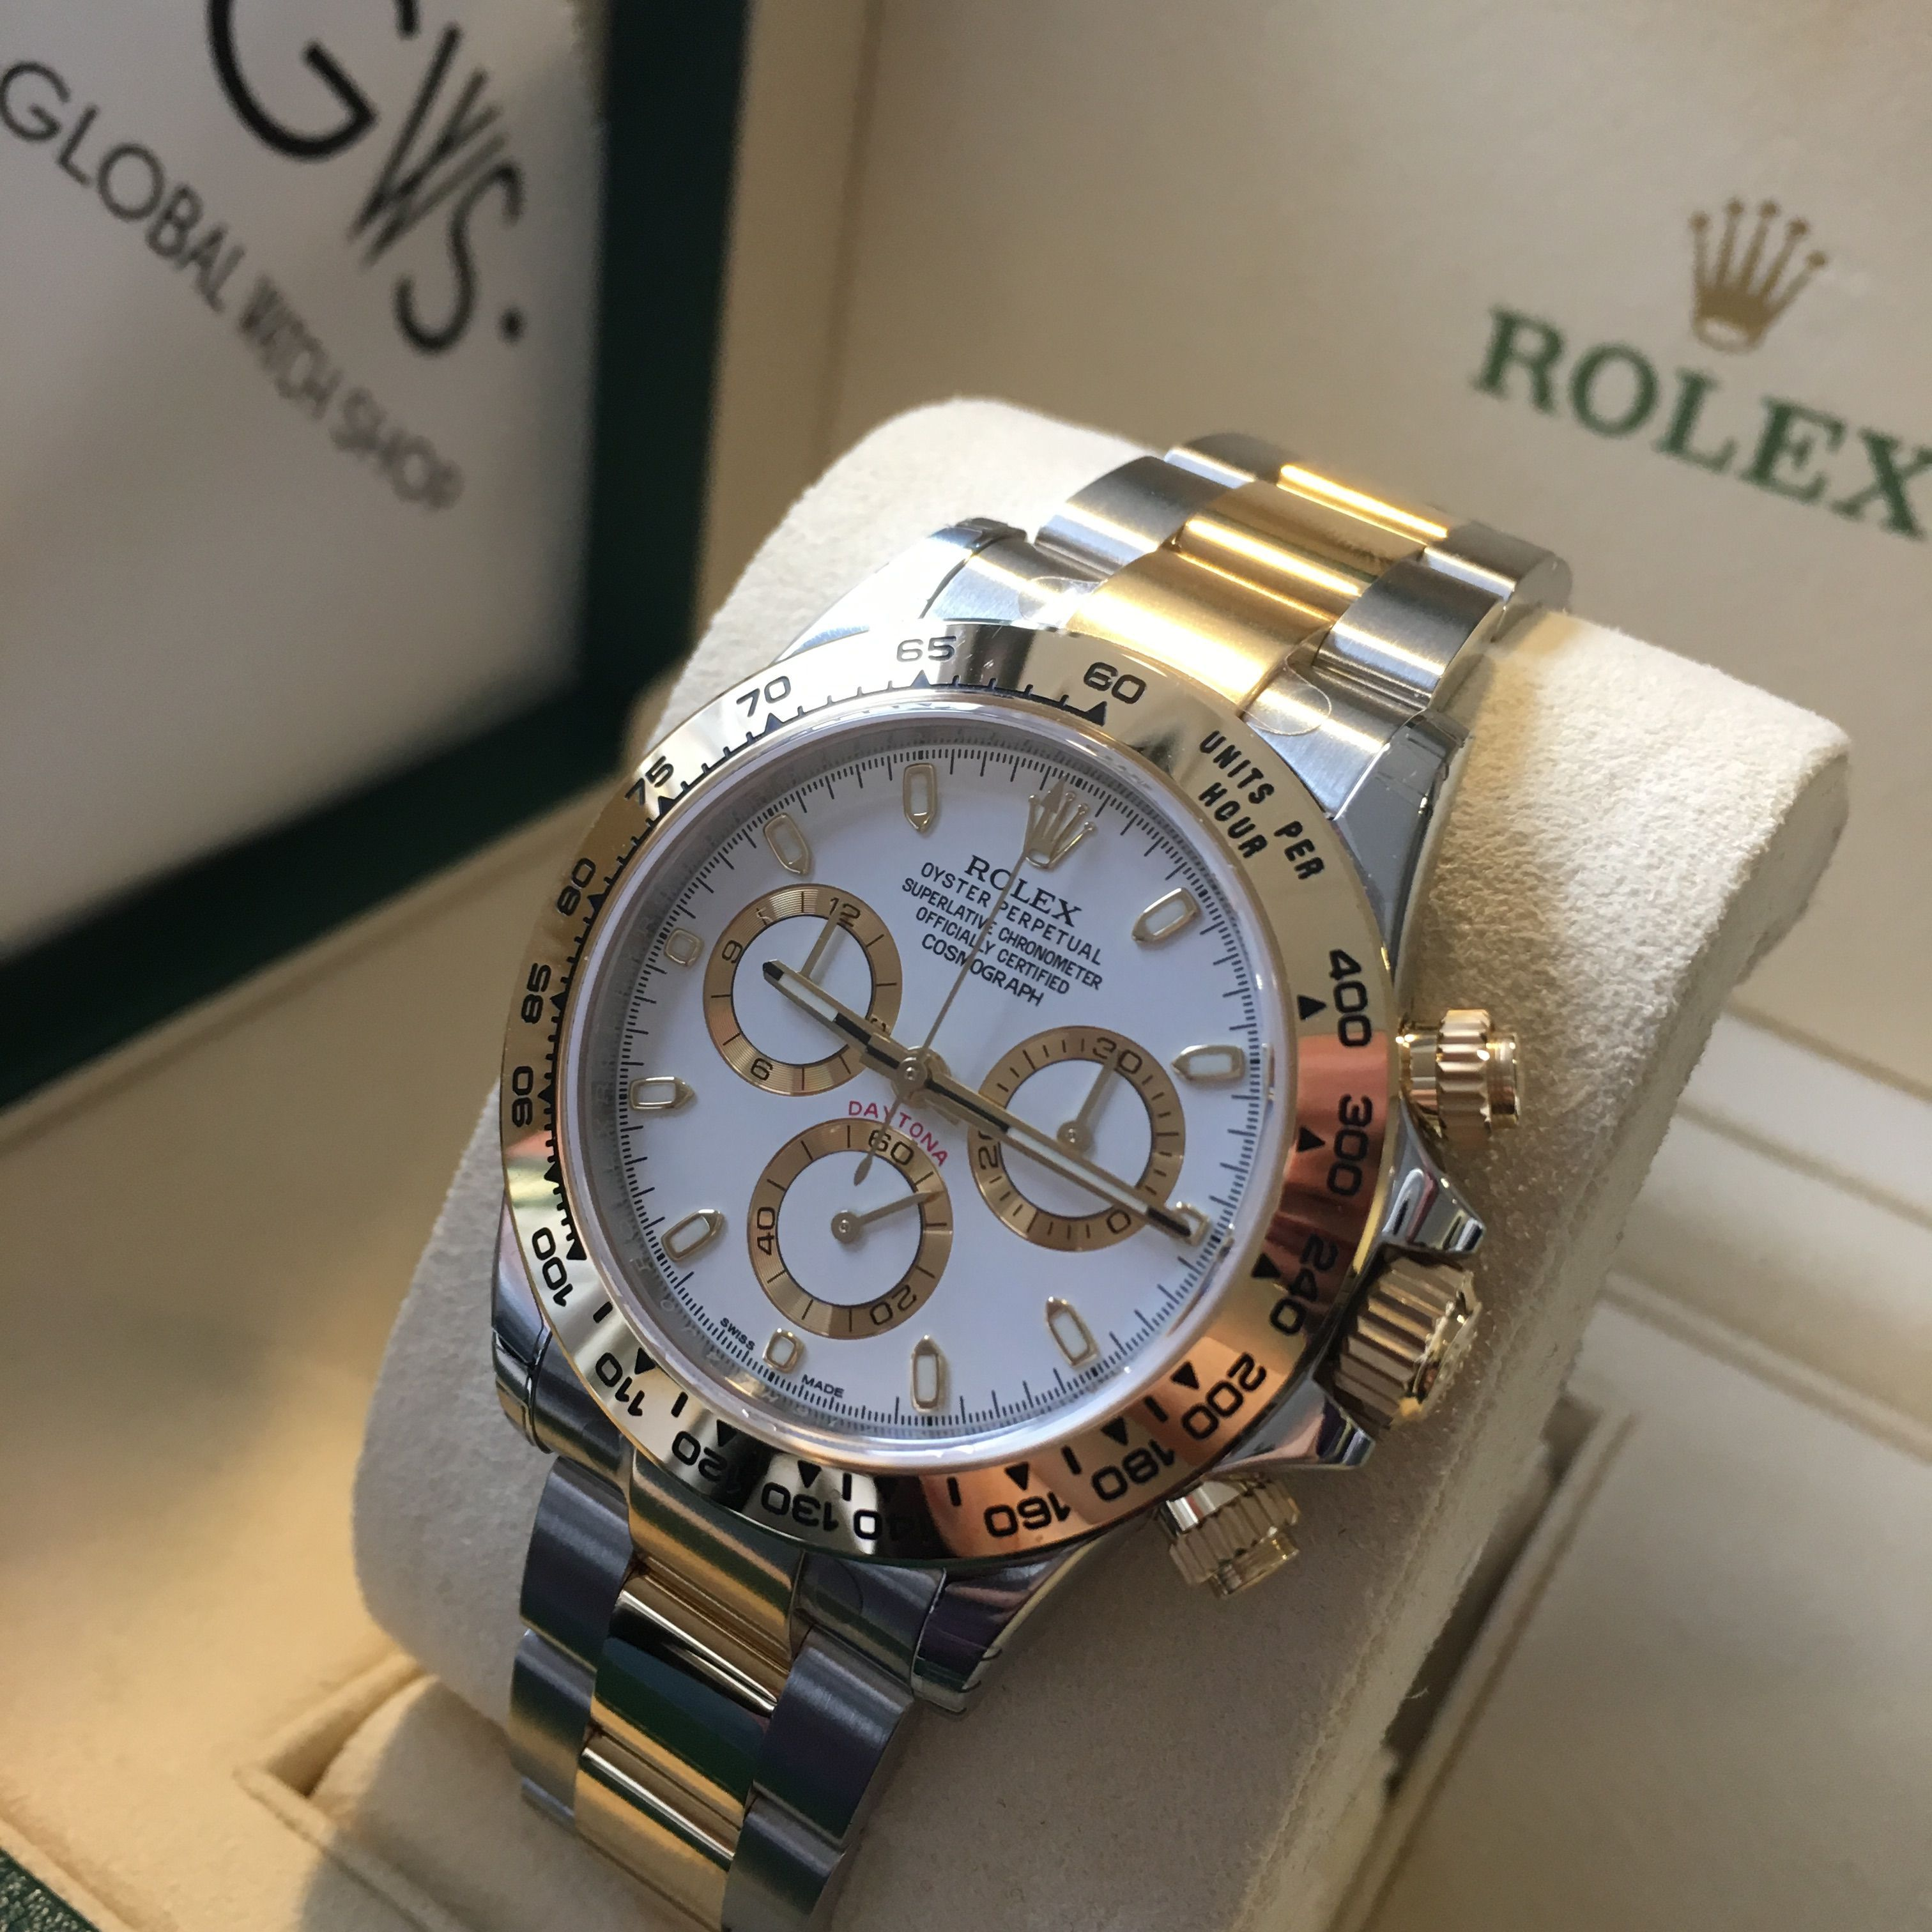 2837a9158b7 Have this masterpiece on your wrist this weekend! Rolex Daytona Steel    Gold White Dial Get it before it goes!